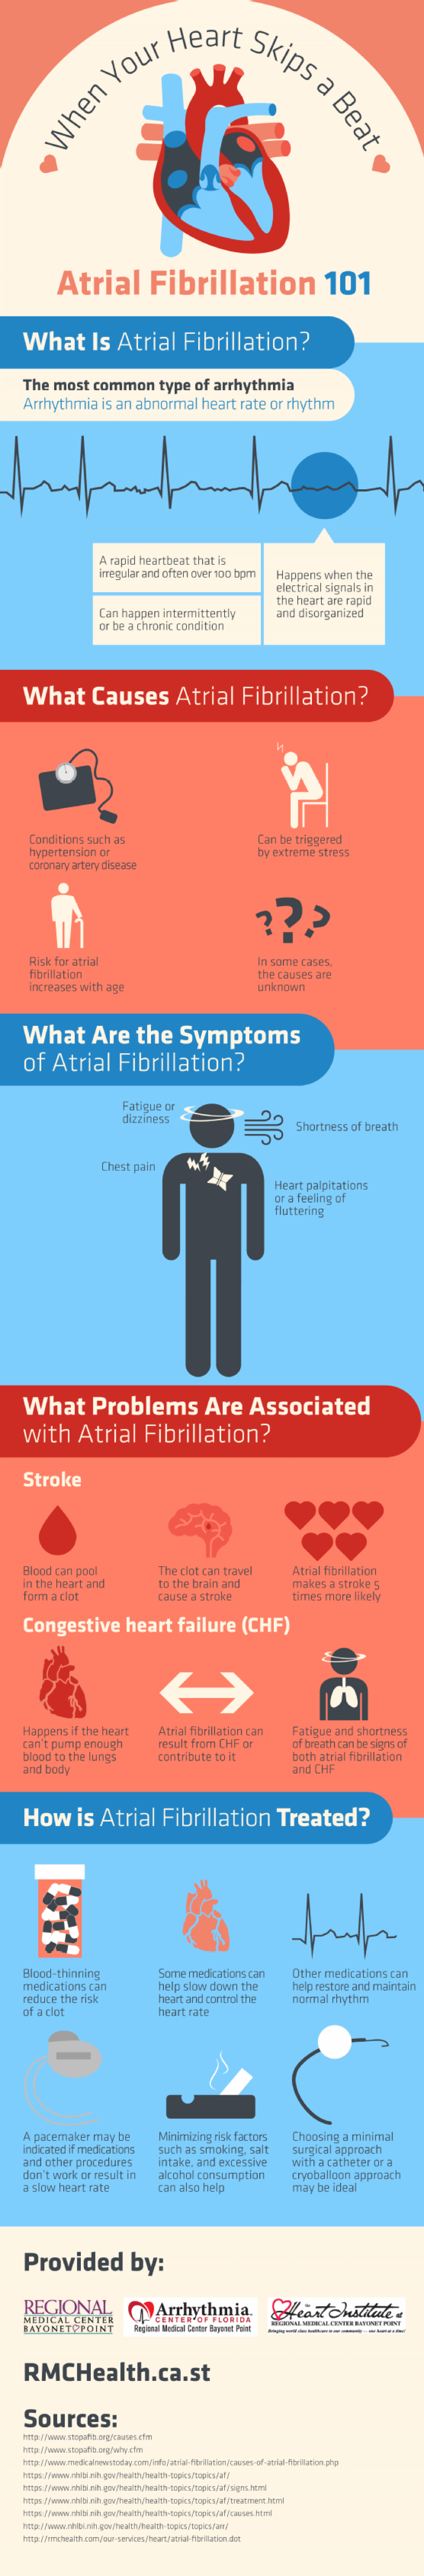 When Your Heart Skips a Beat: Atrial Fibrillation 101 Infographic